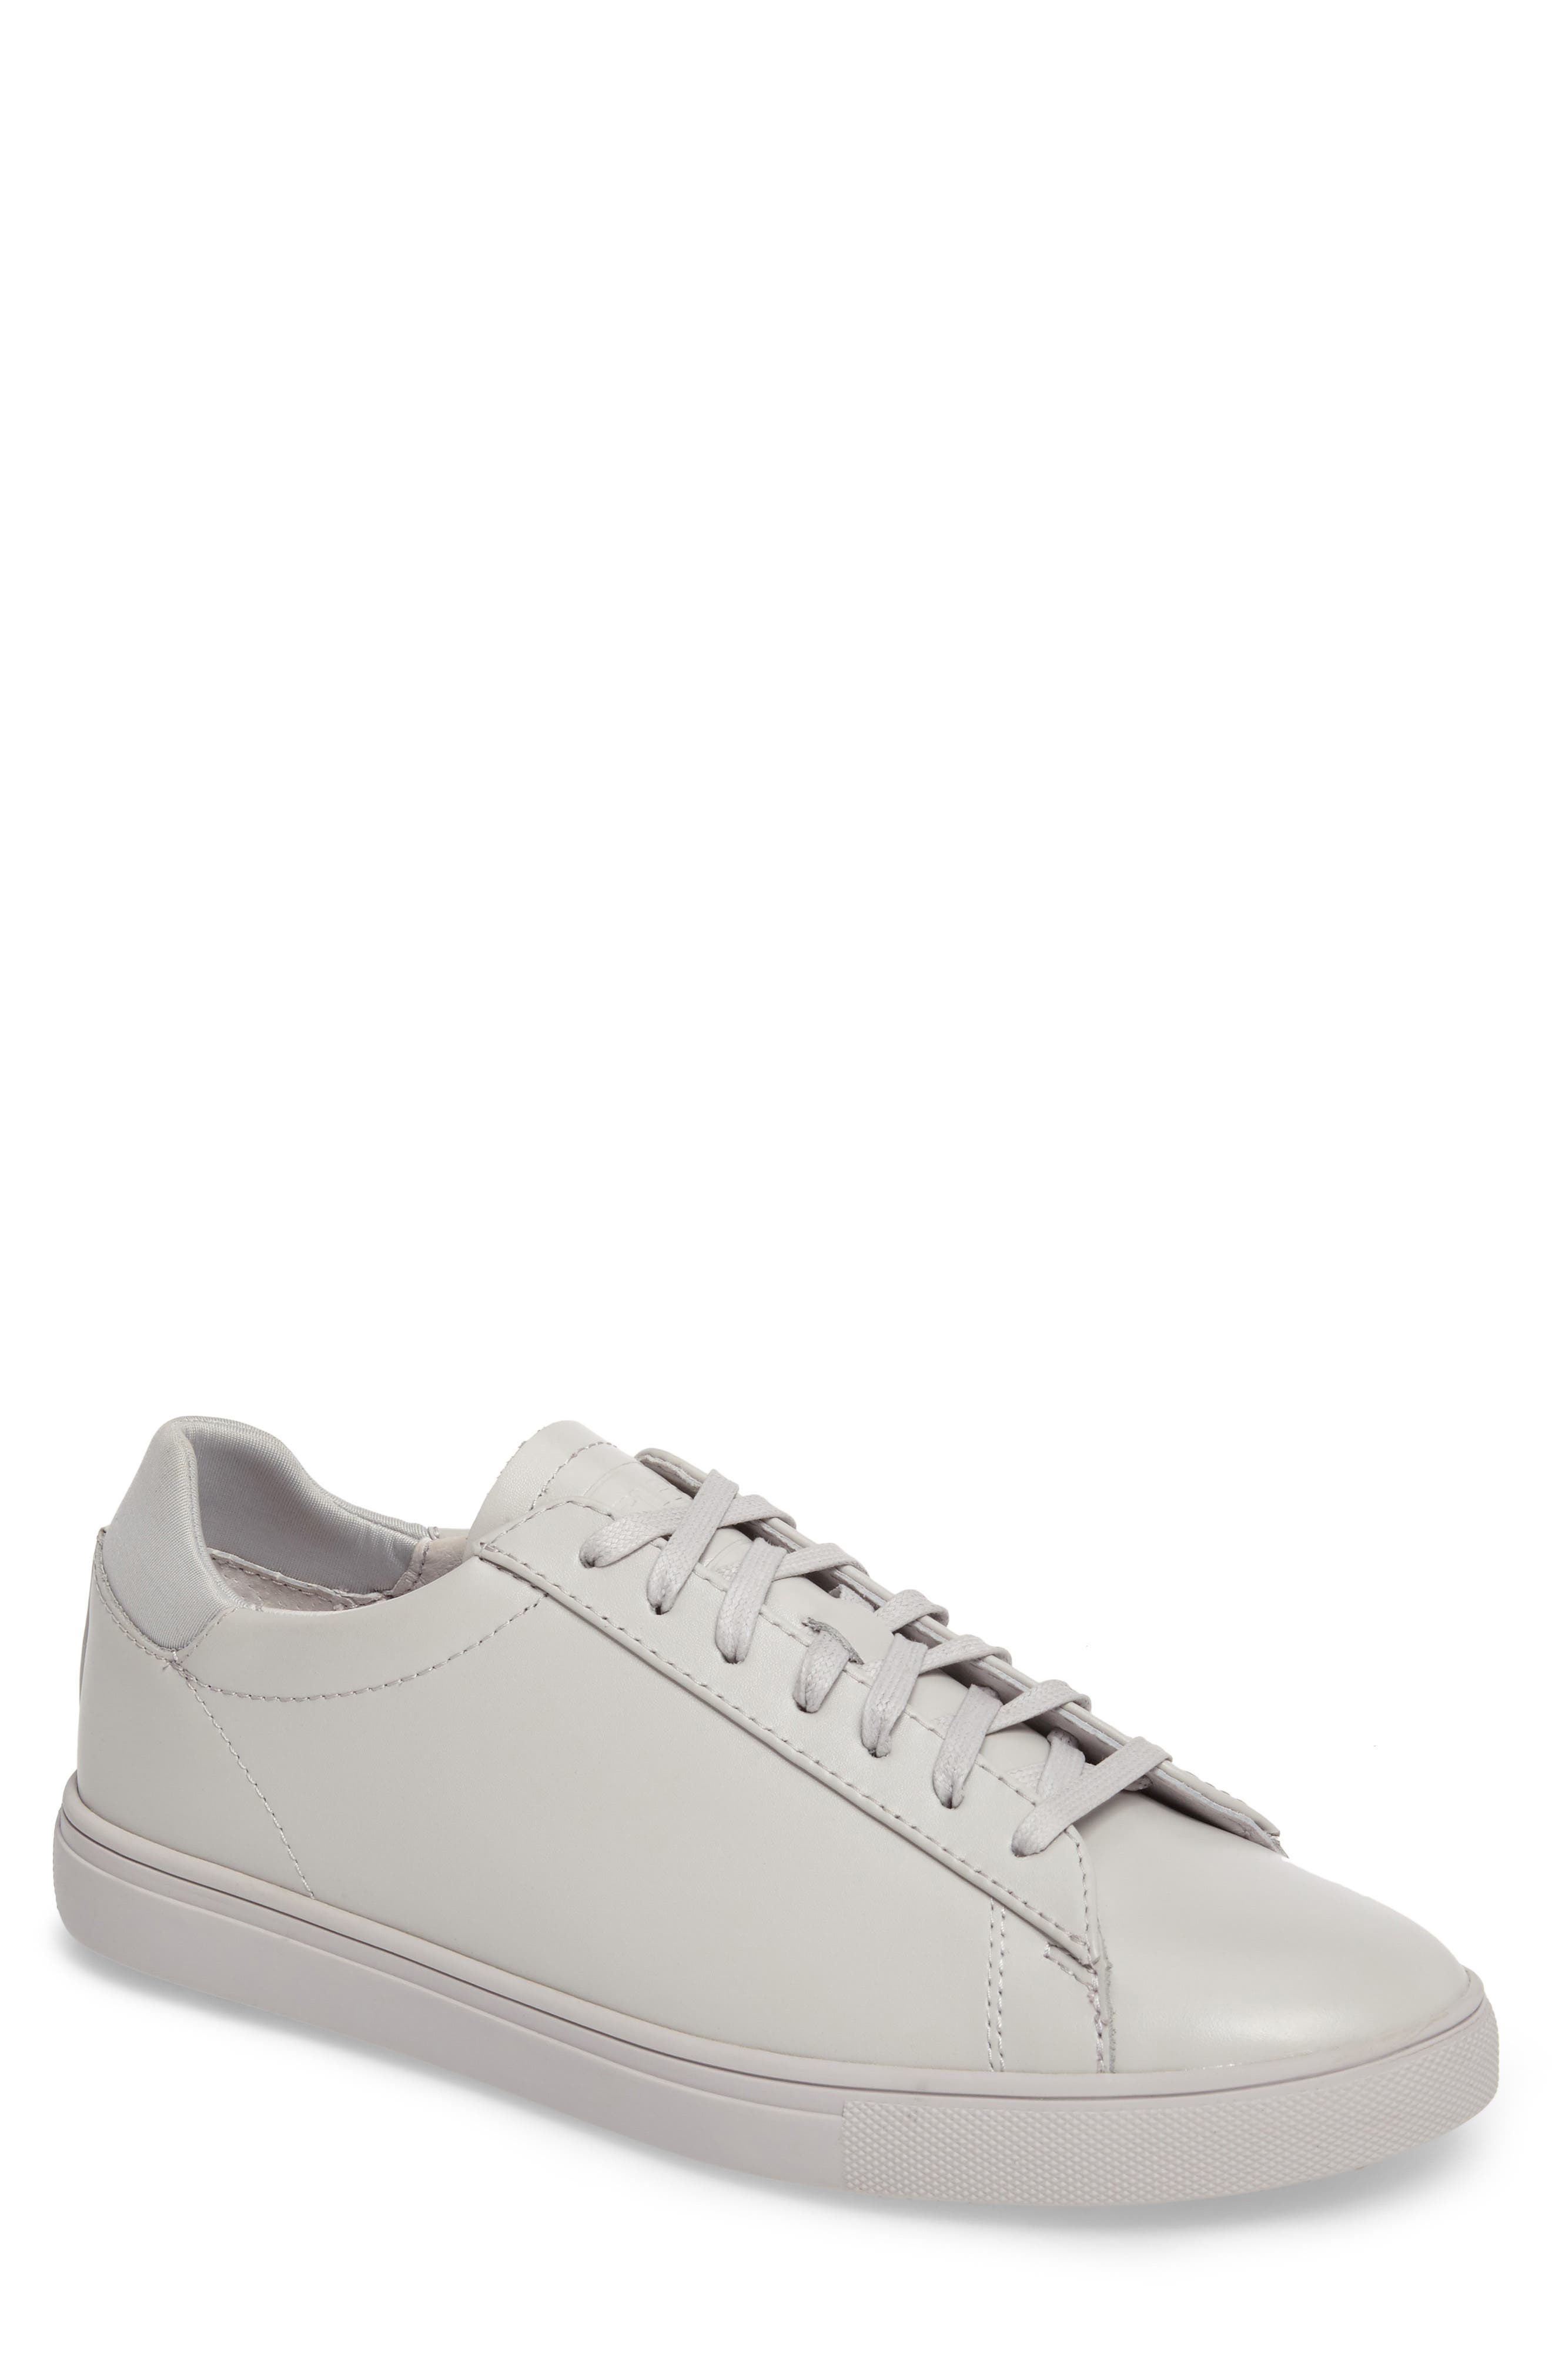 CLAE 'Bradley' Sneaker in Microgray Leather